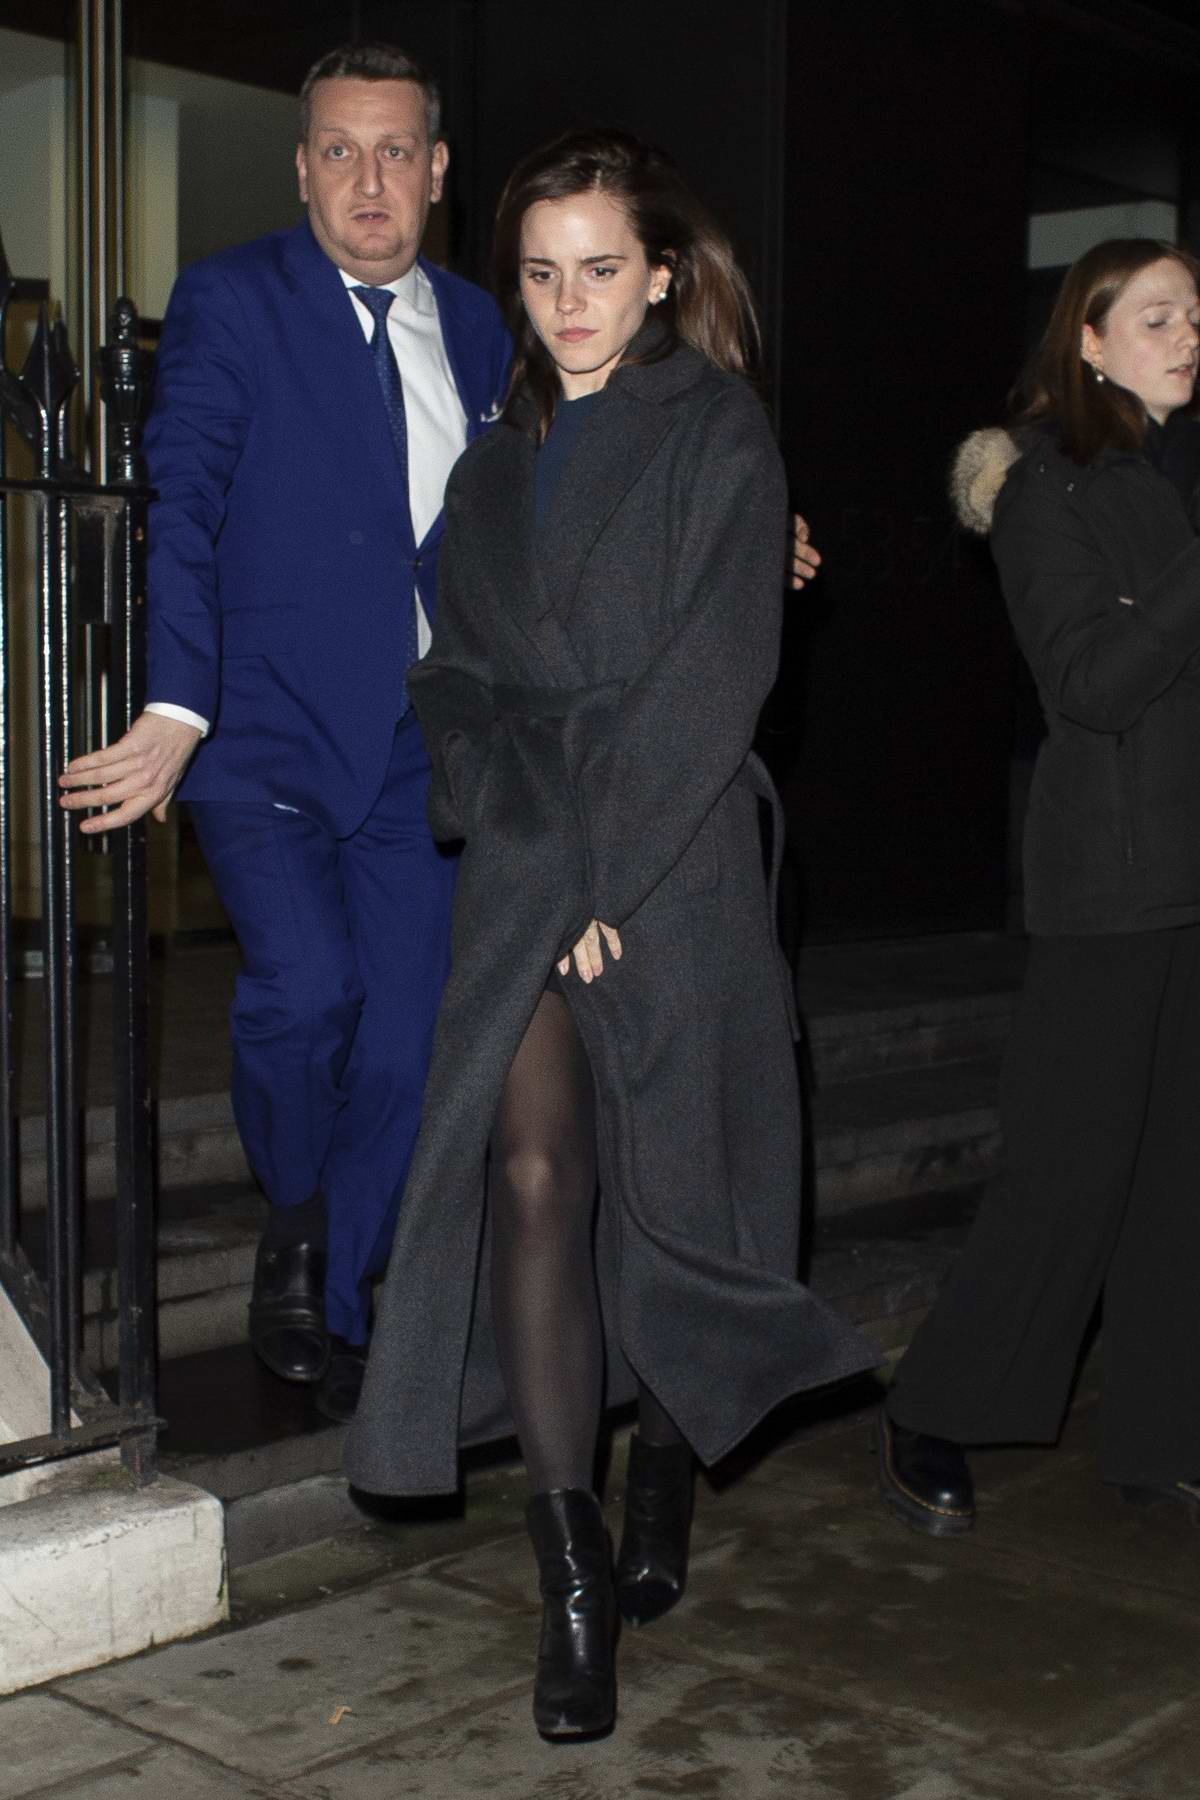 Emma Watson seen wearing a dark grey long coat as she leaves C restaurant in London, UK